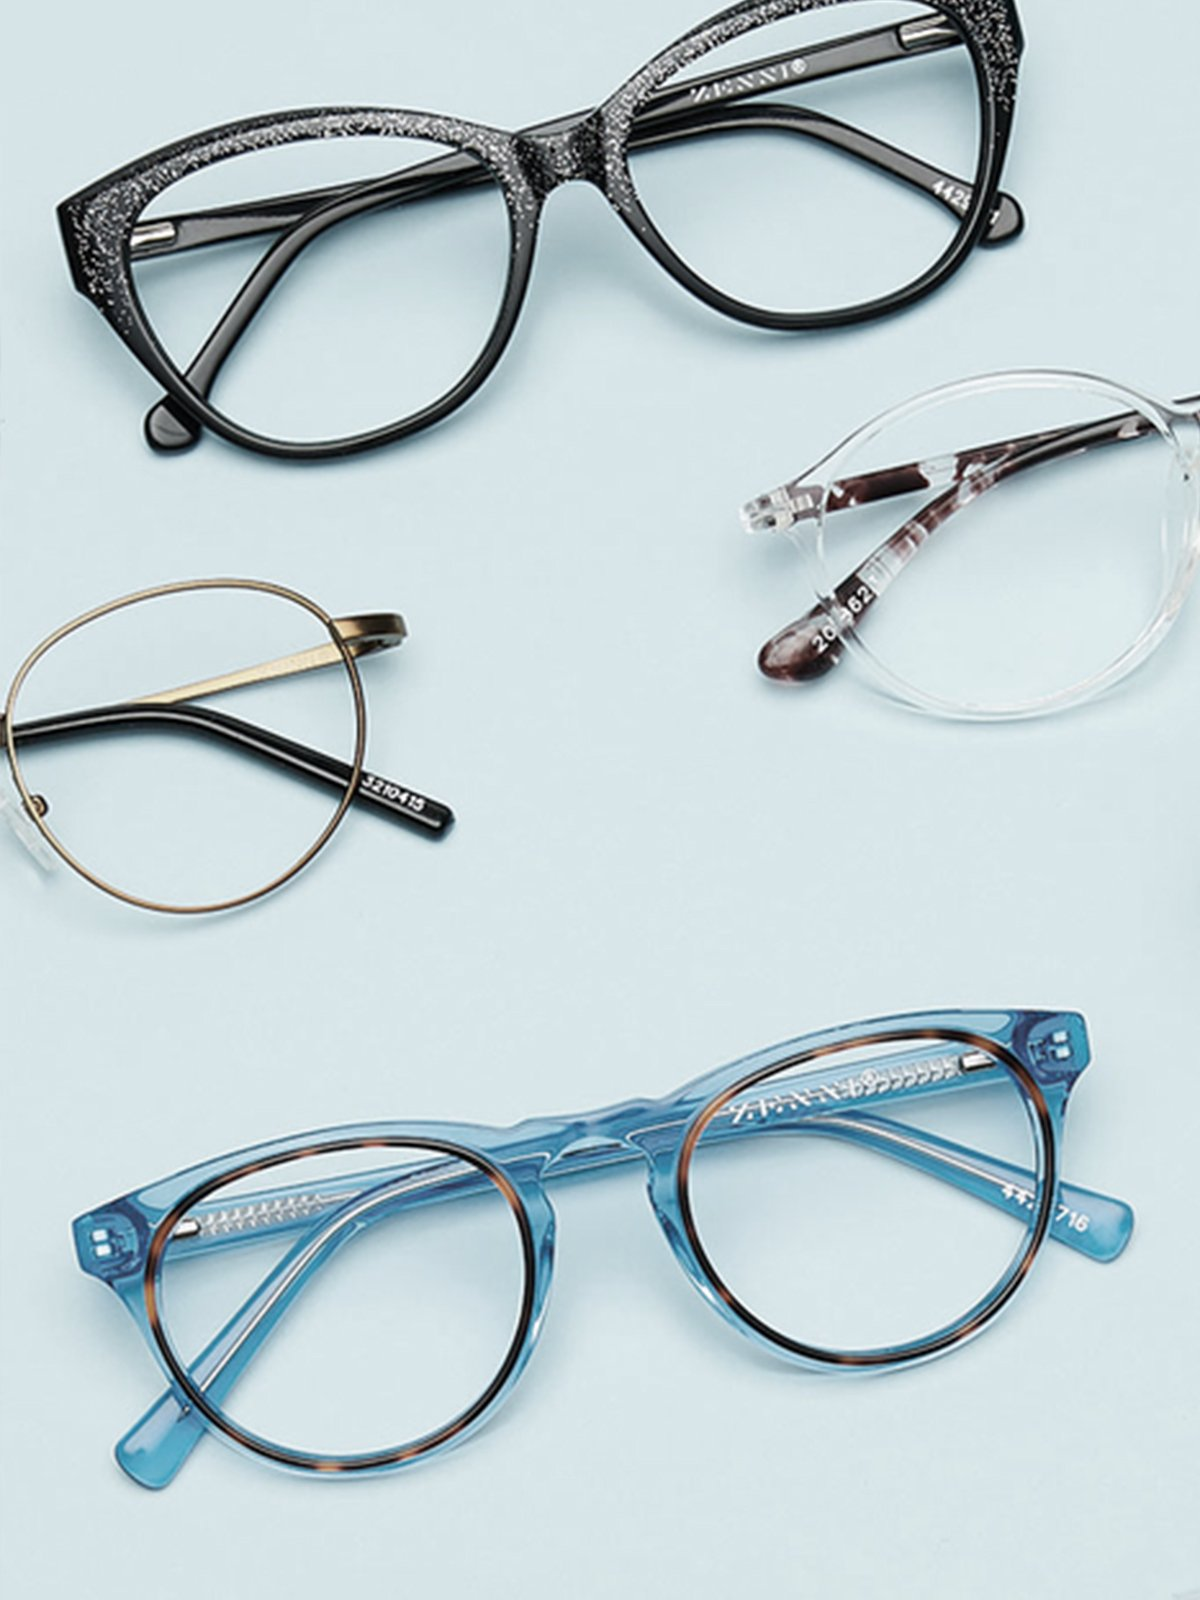 Zenni eye glasses